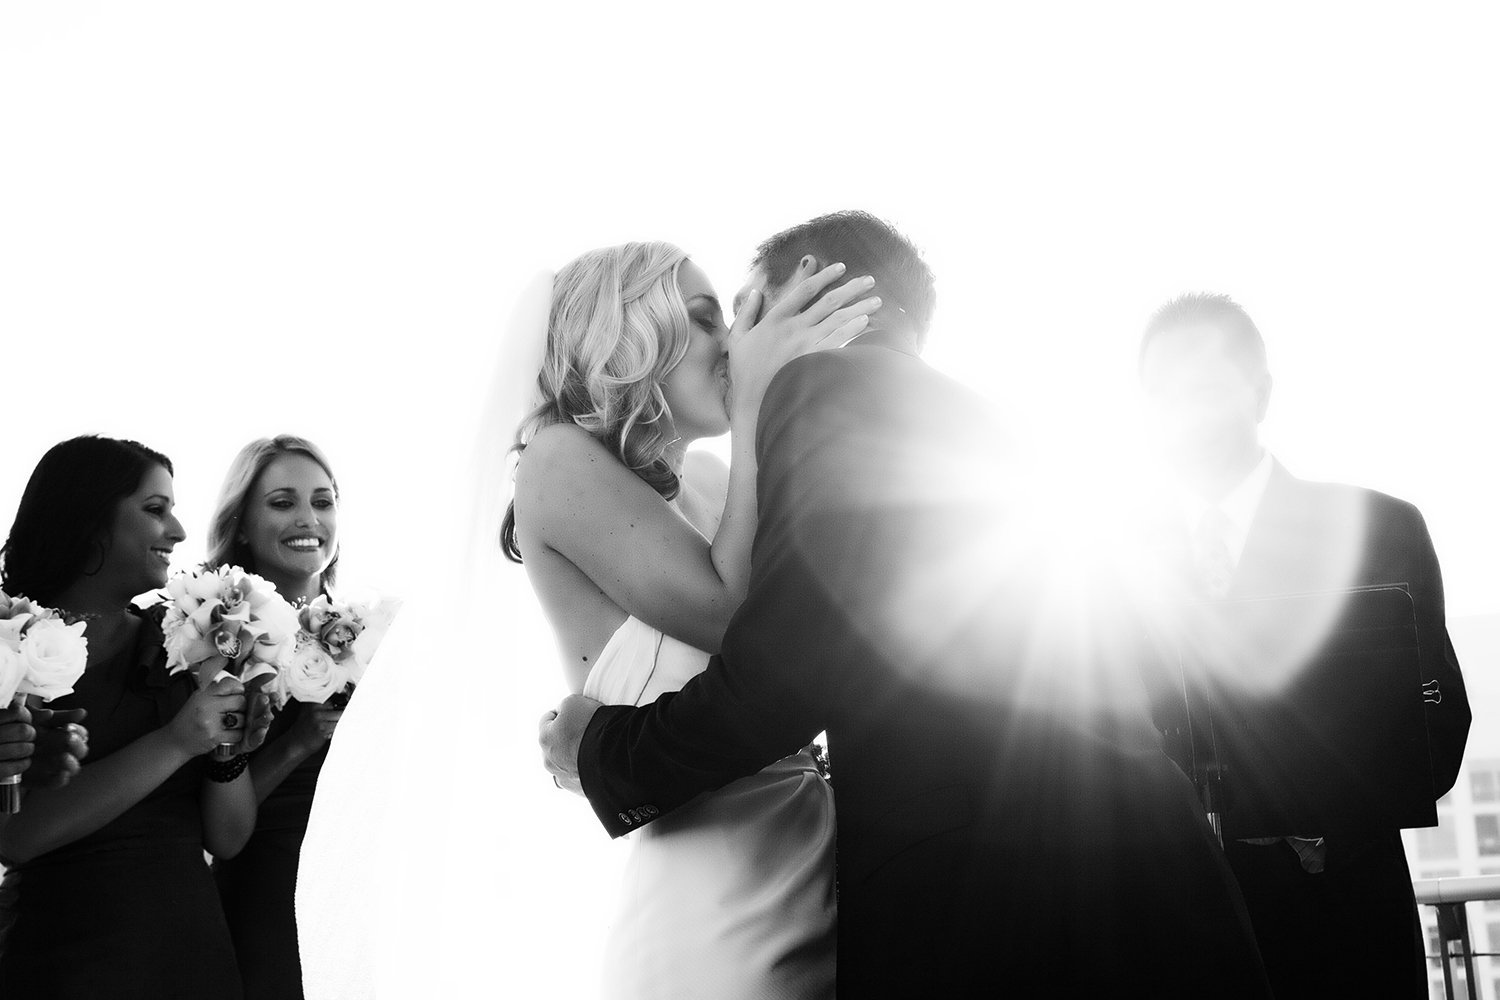 The Ultimate Skybox wedding photos bride and groom kiss at ceremony